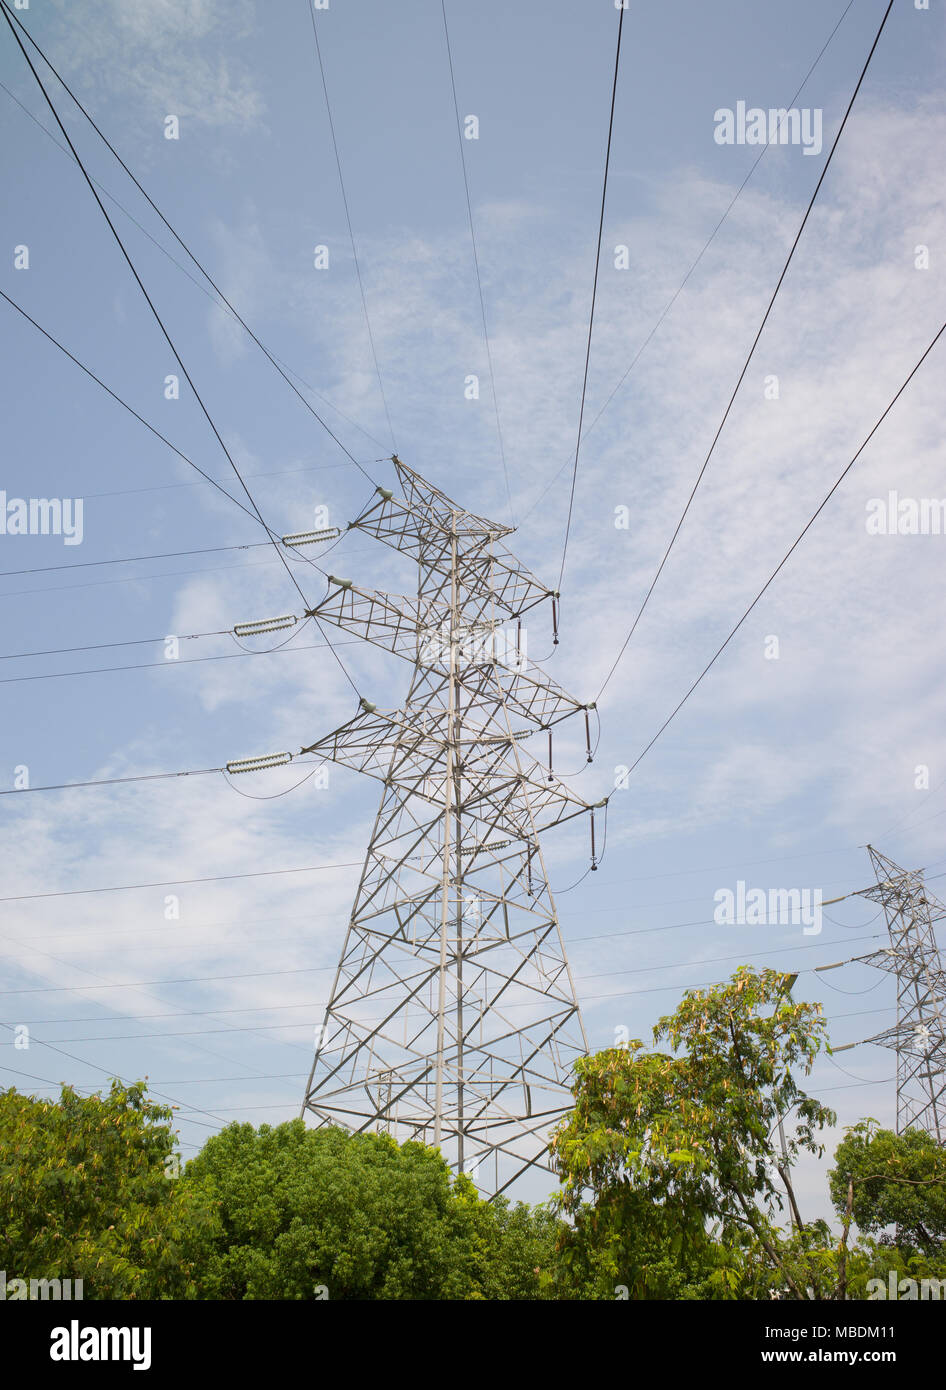 Electricity pylons and cables with blue sky and clouds in background - Stock Image